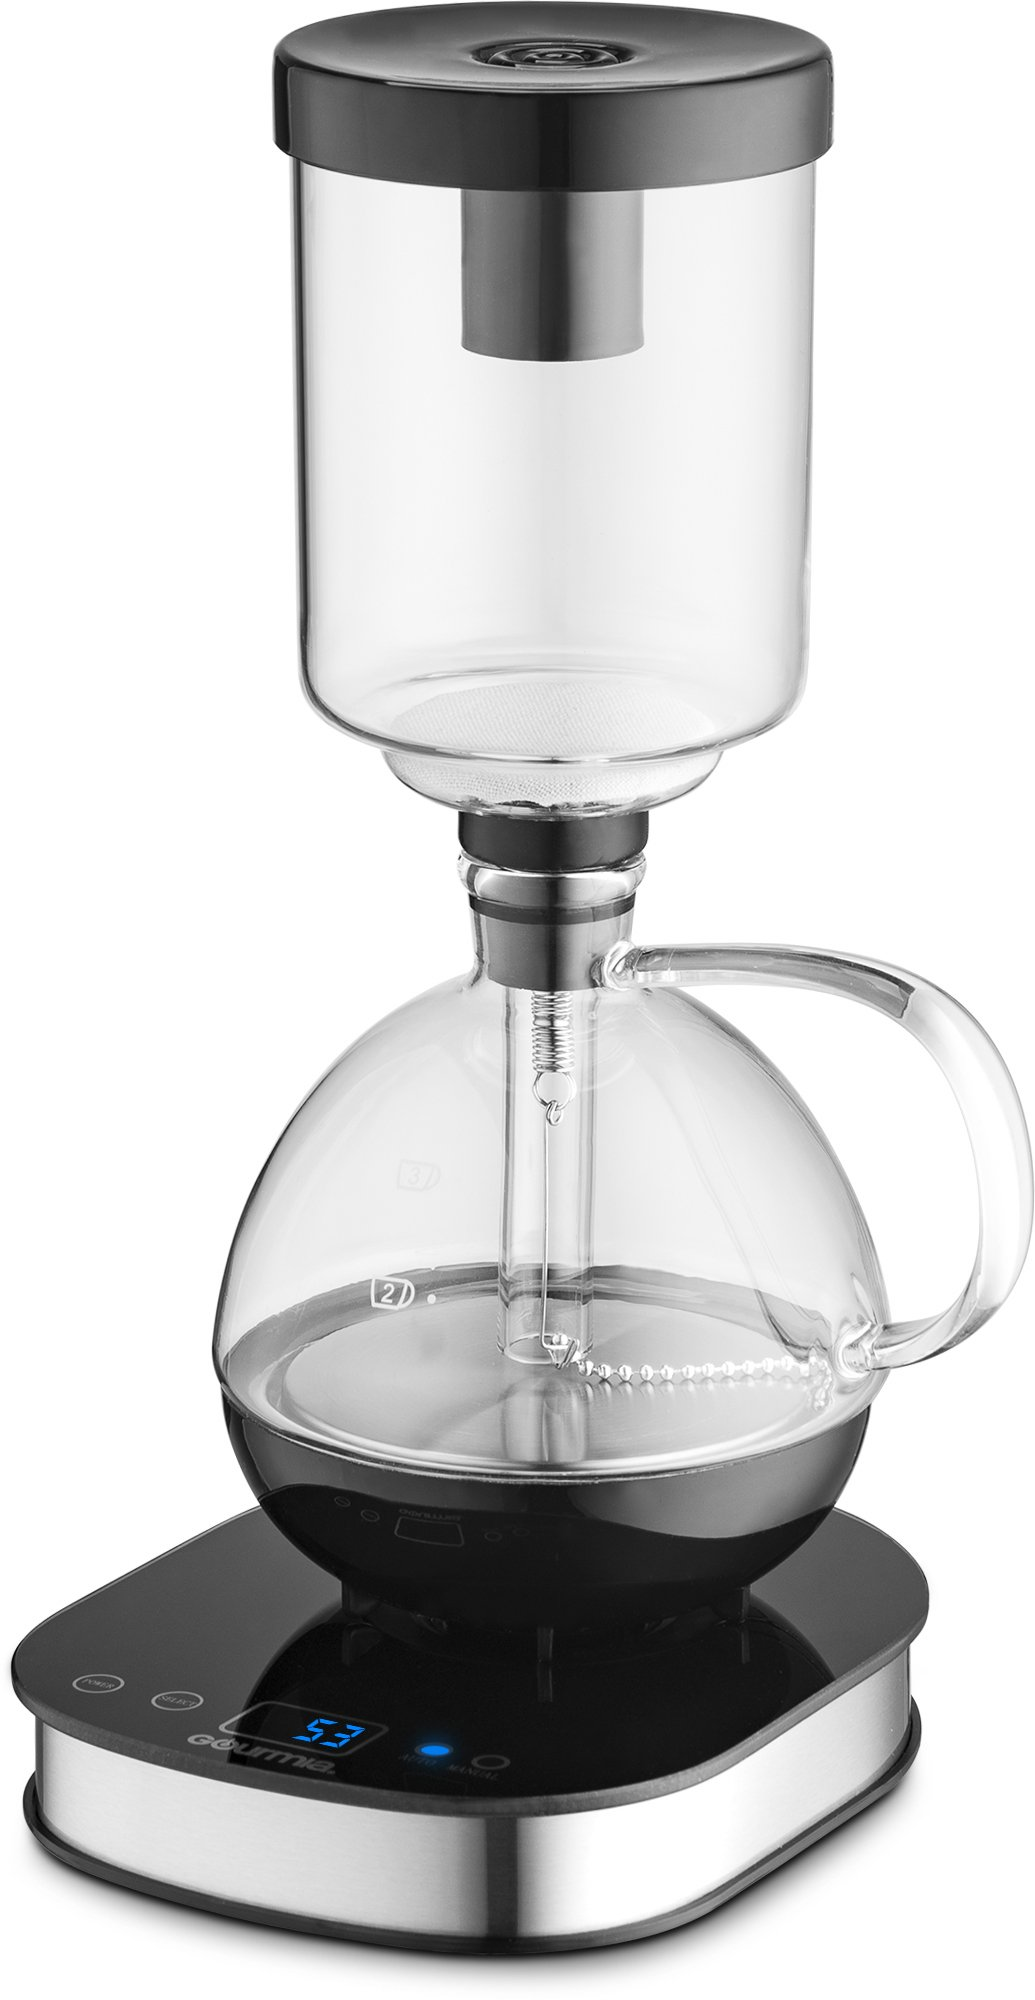 Gourmia GCM3500 Digital Siphon Artisanal Coffee Machine - Pedestal Display Touch LCD Control With Automatic & Manual Brewing Functions, Bold Flavor by Gourmia